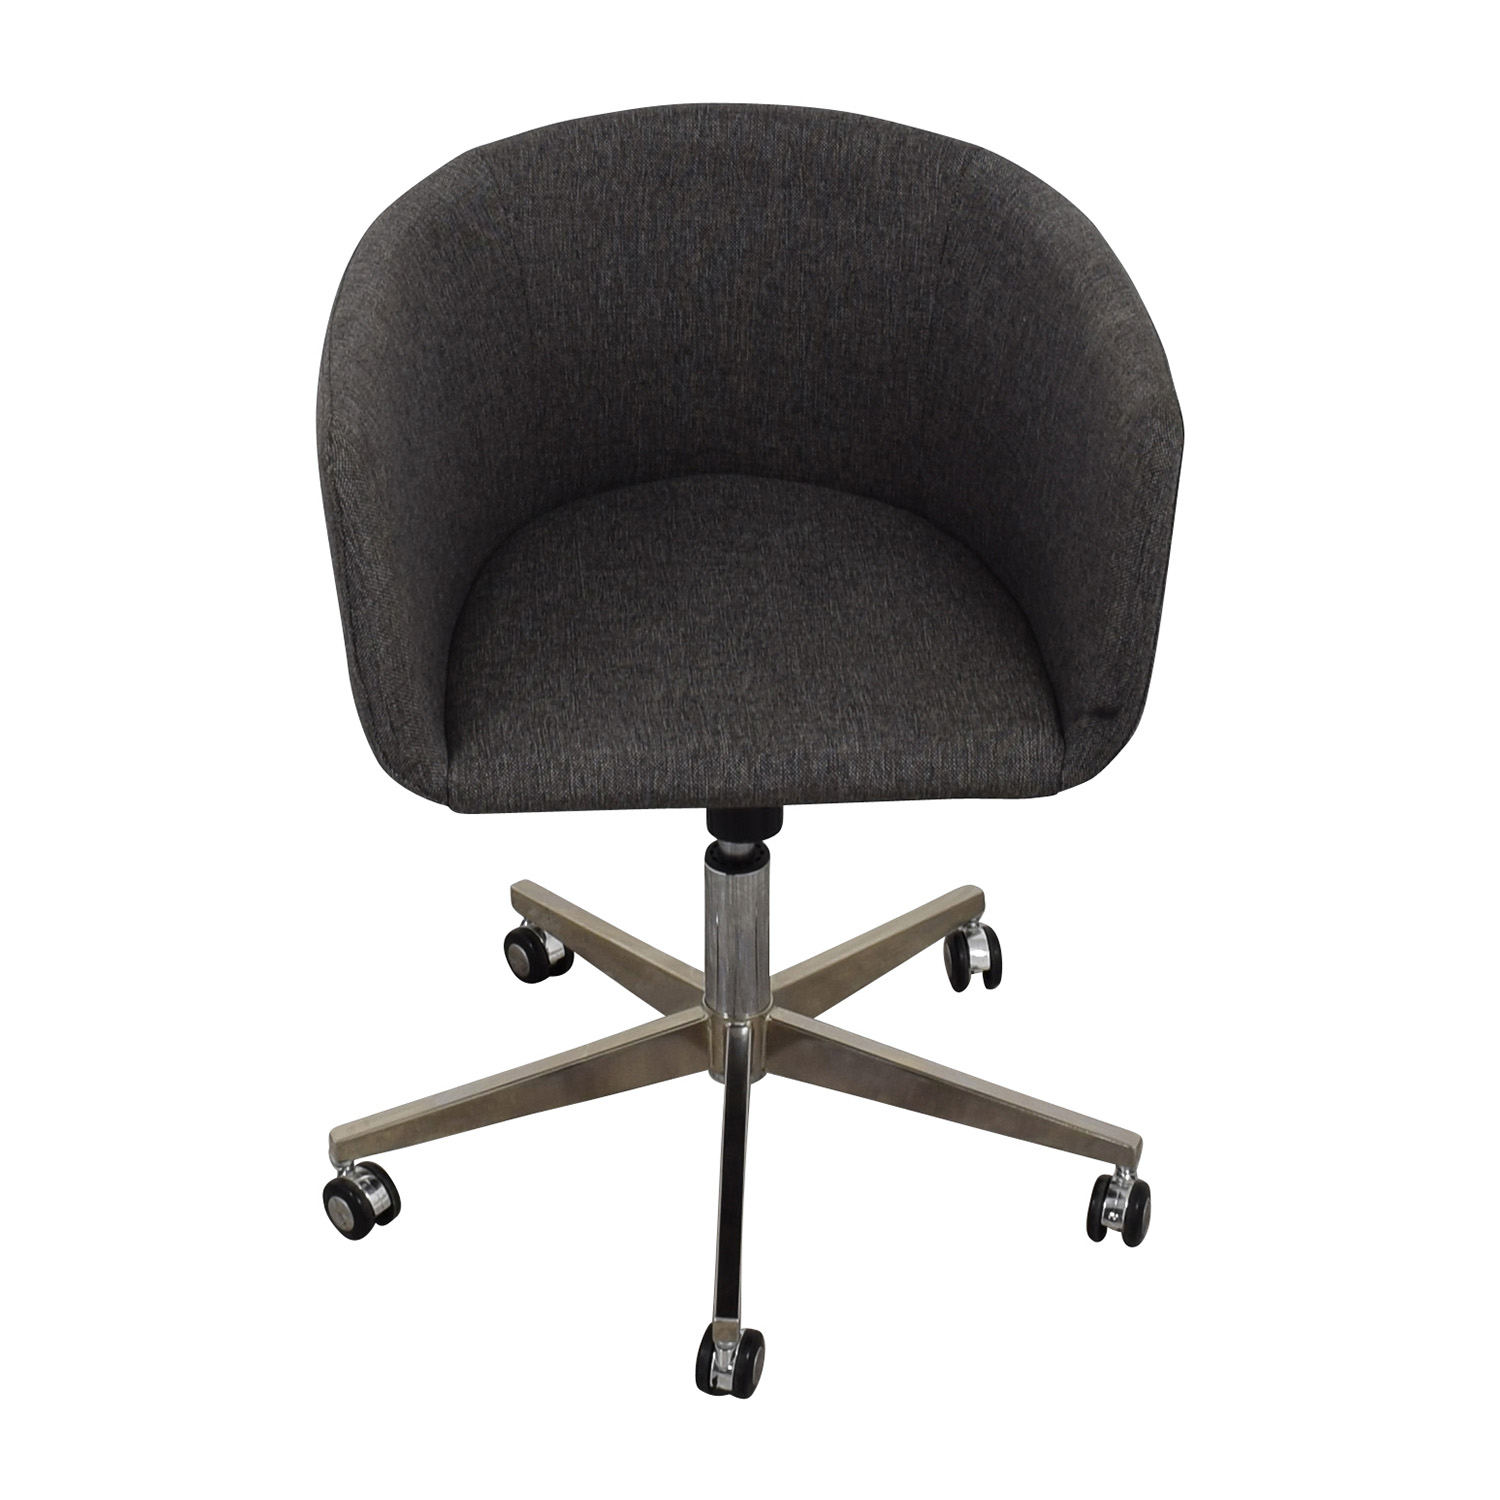 80 Off Modern Grey Office Chair With Chrome Wheels Chairs